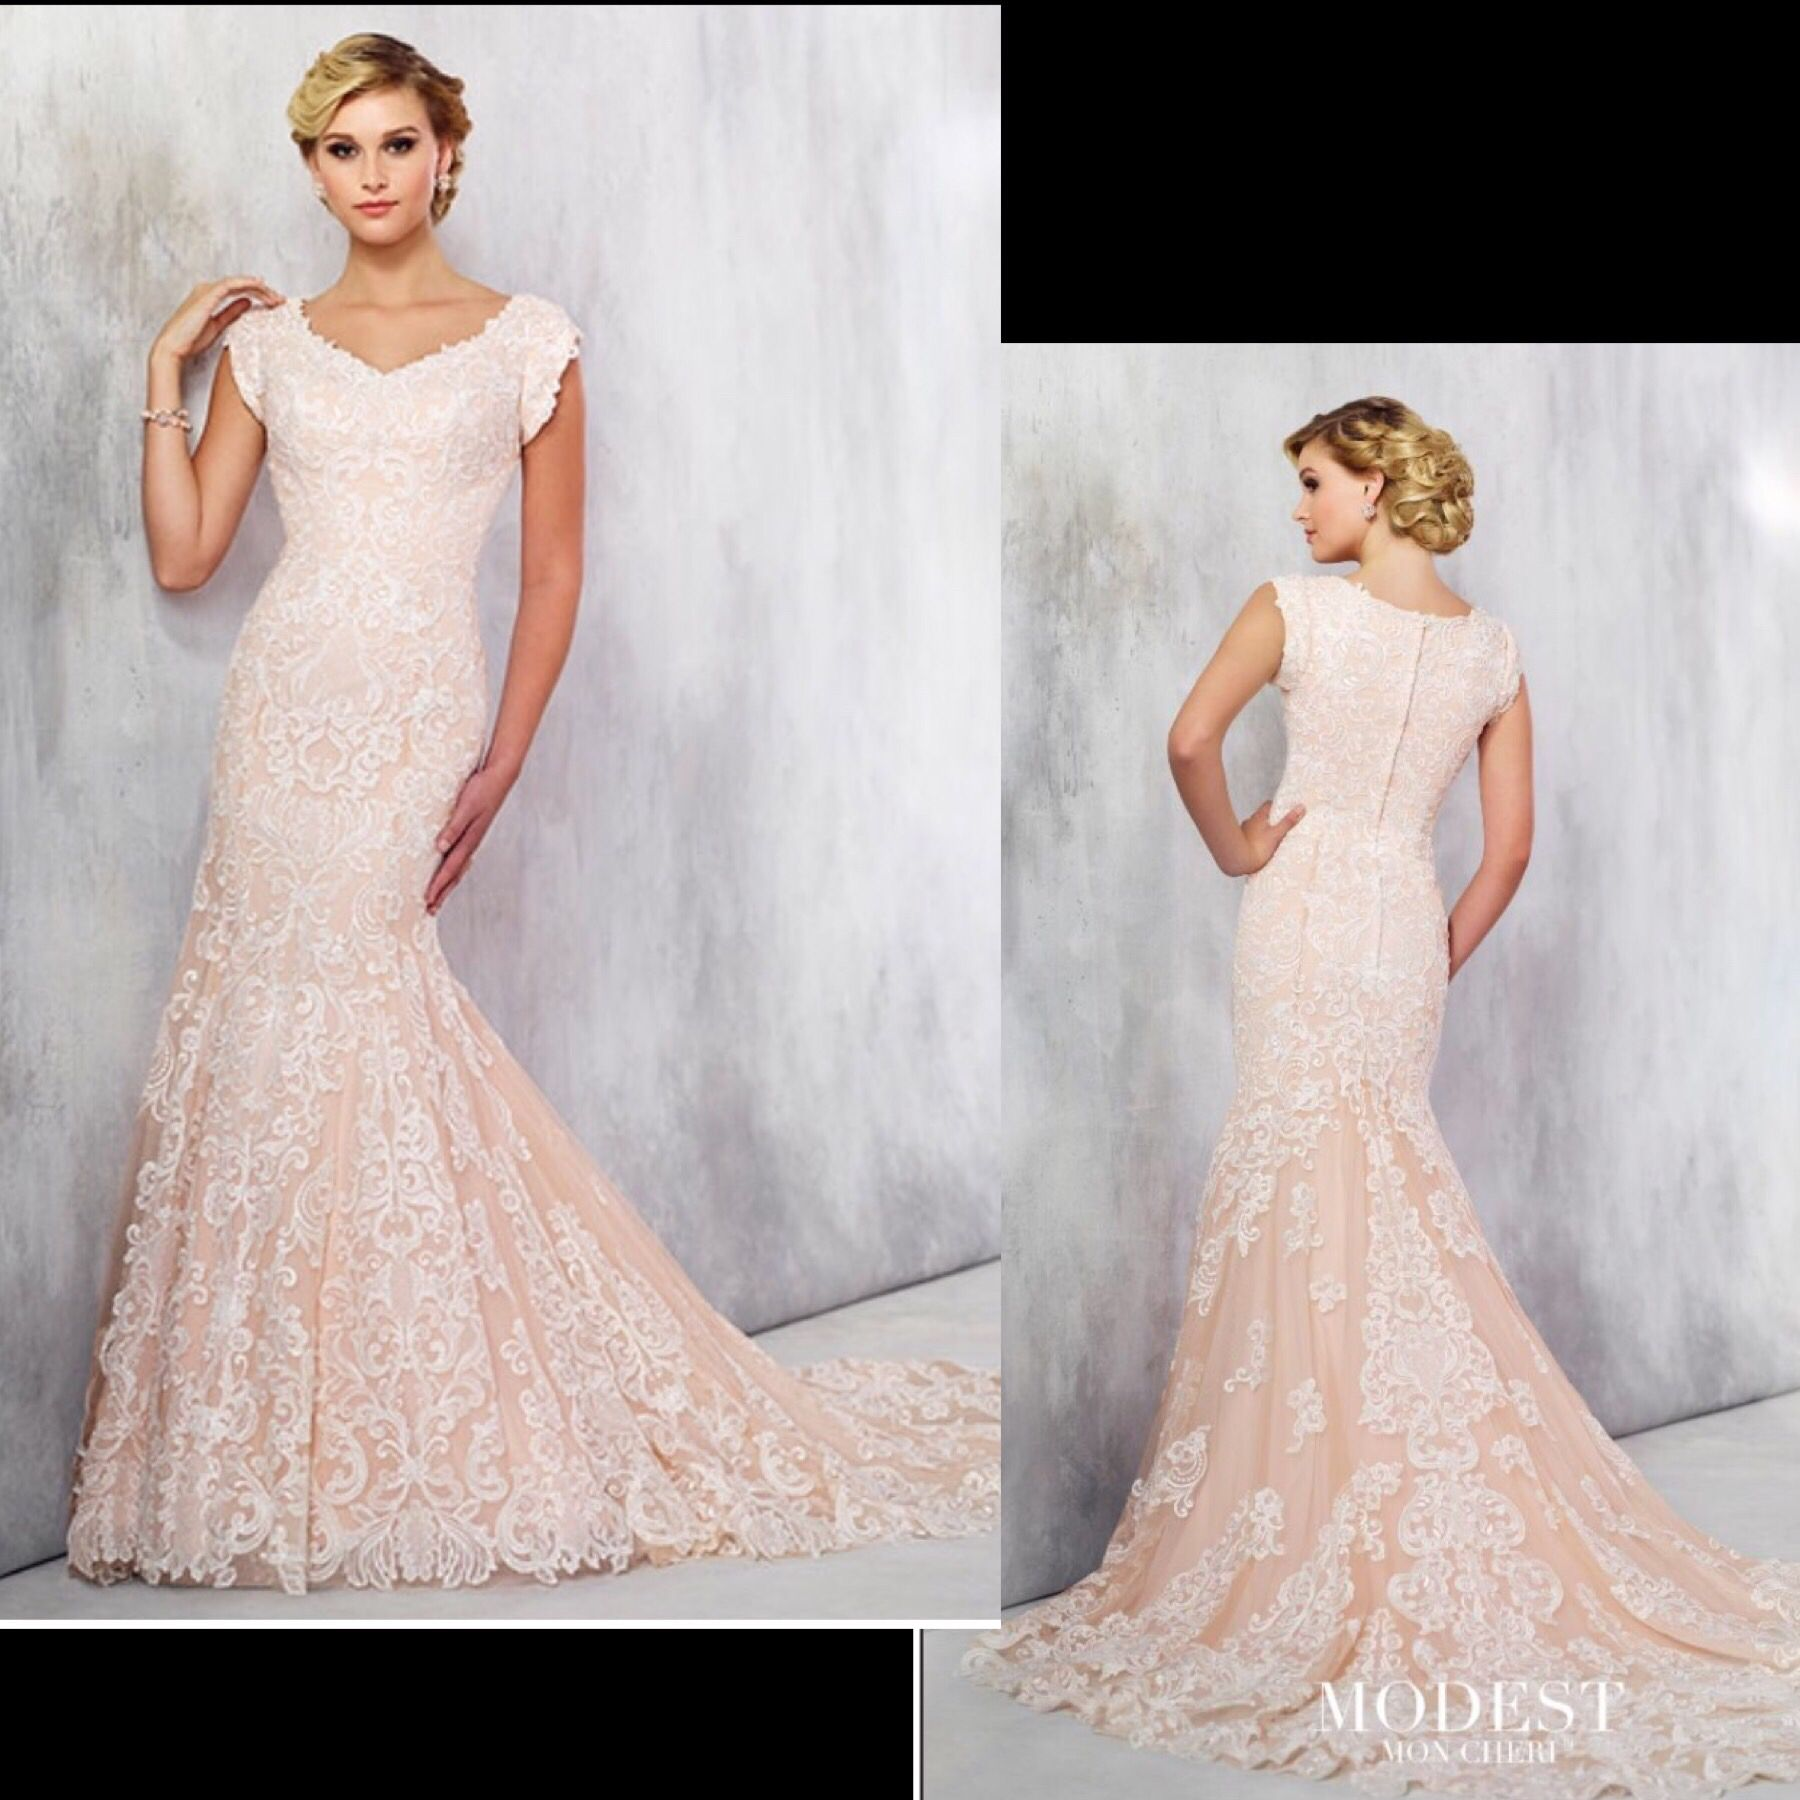 Wedding Gowns Indianapolis: We've Got Some GORGEOUS Gowns Coming In This Week. This